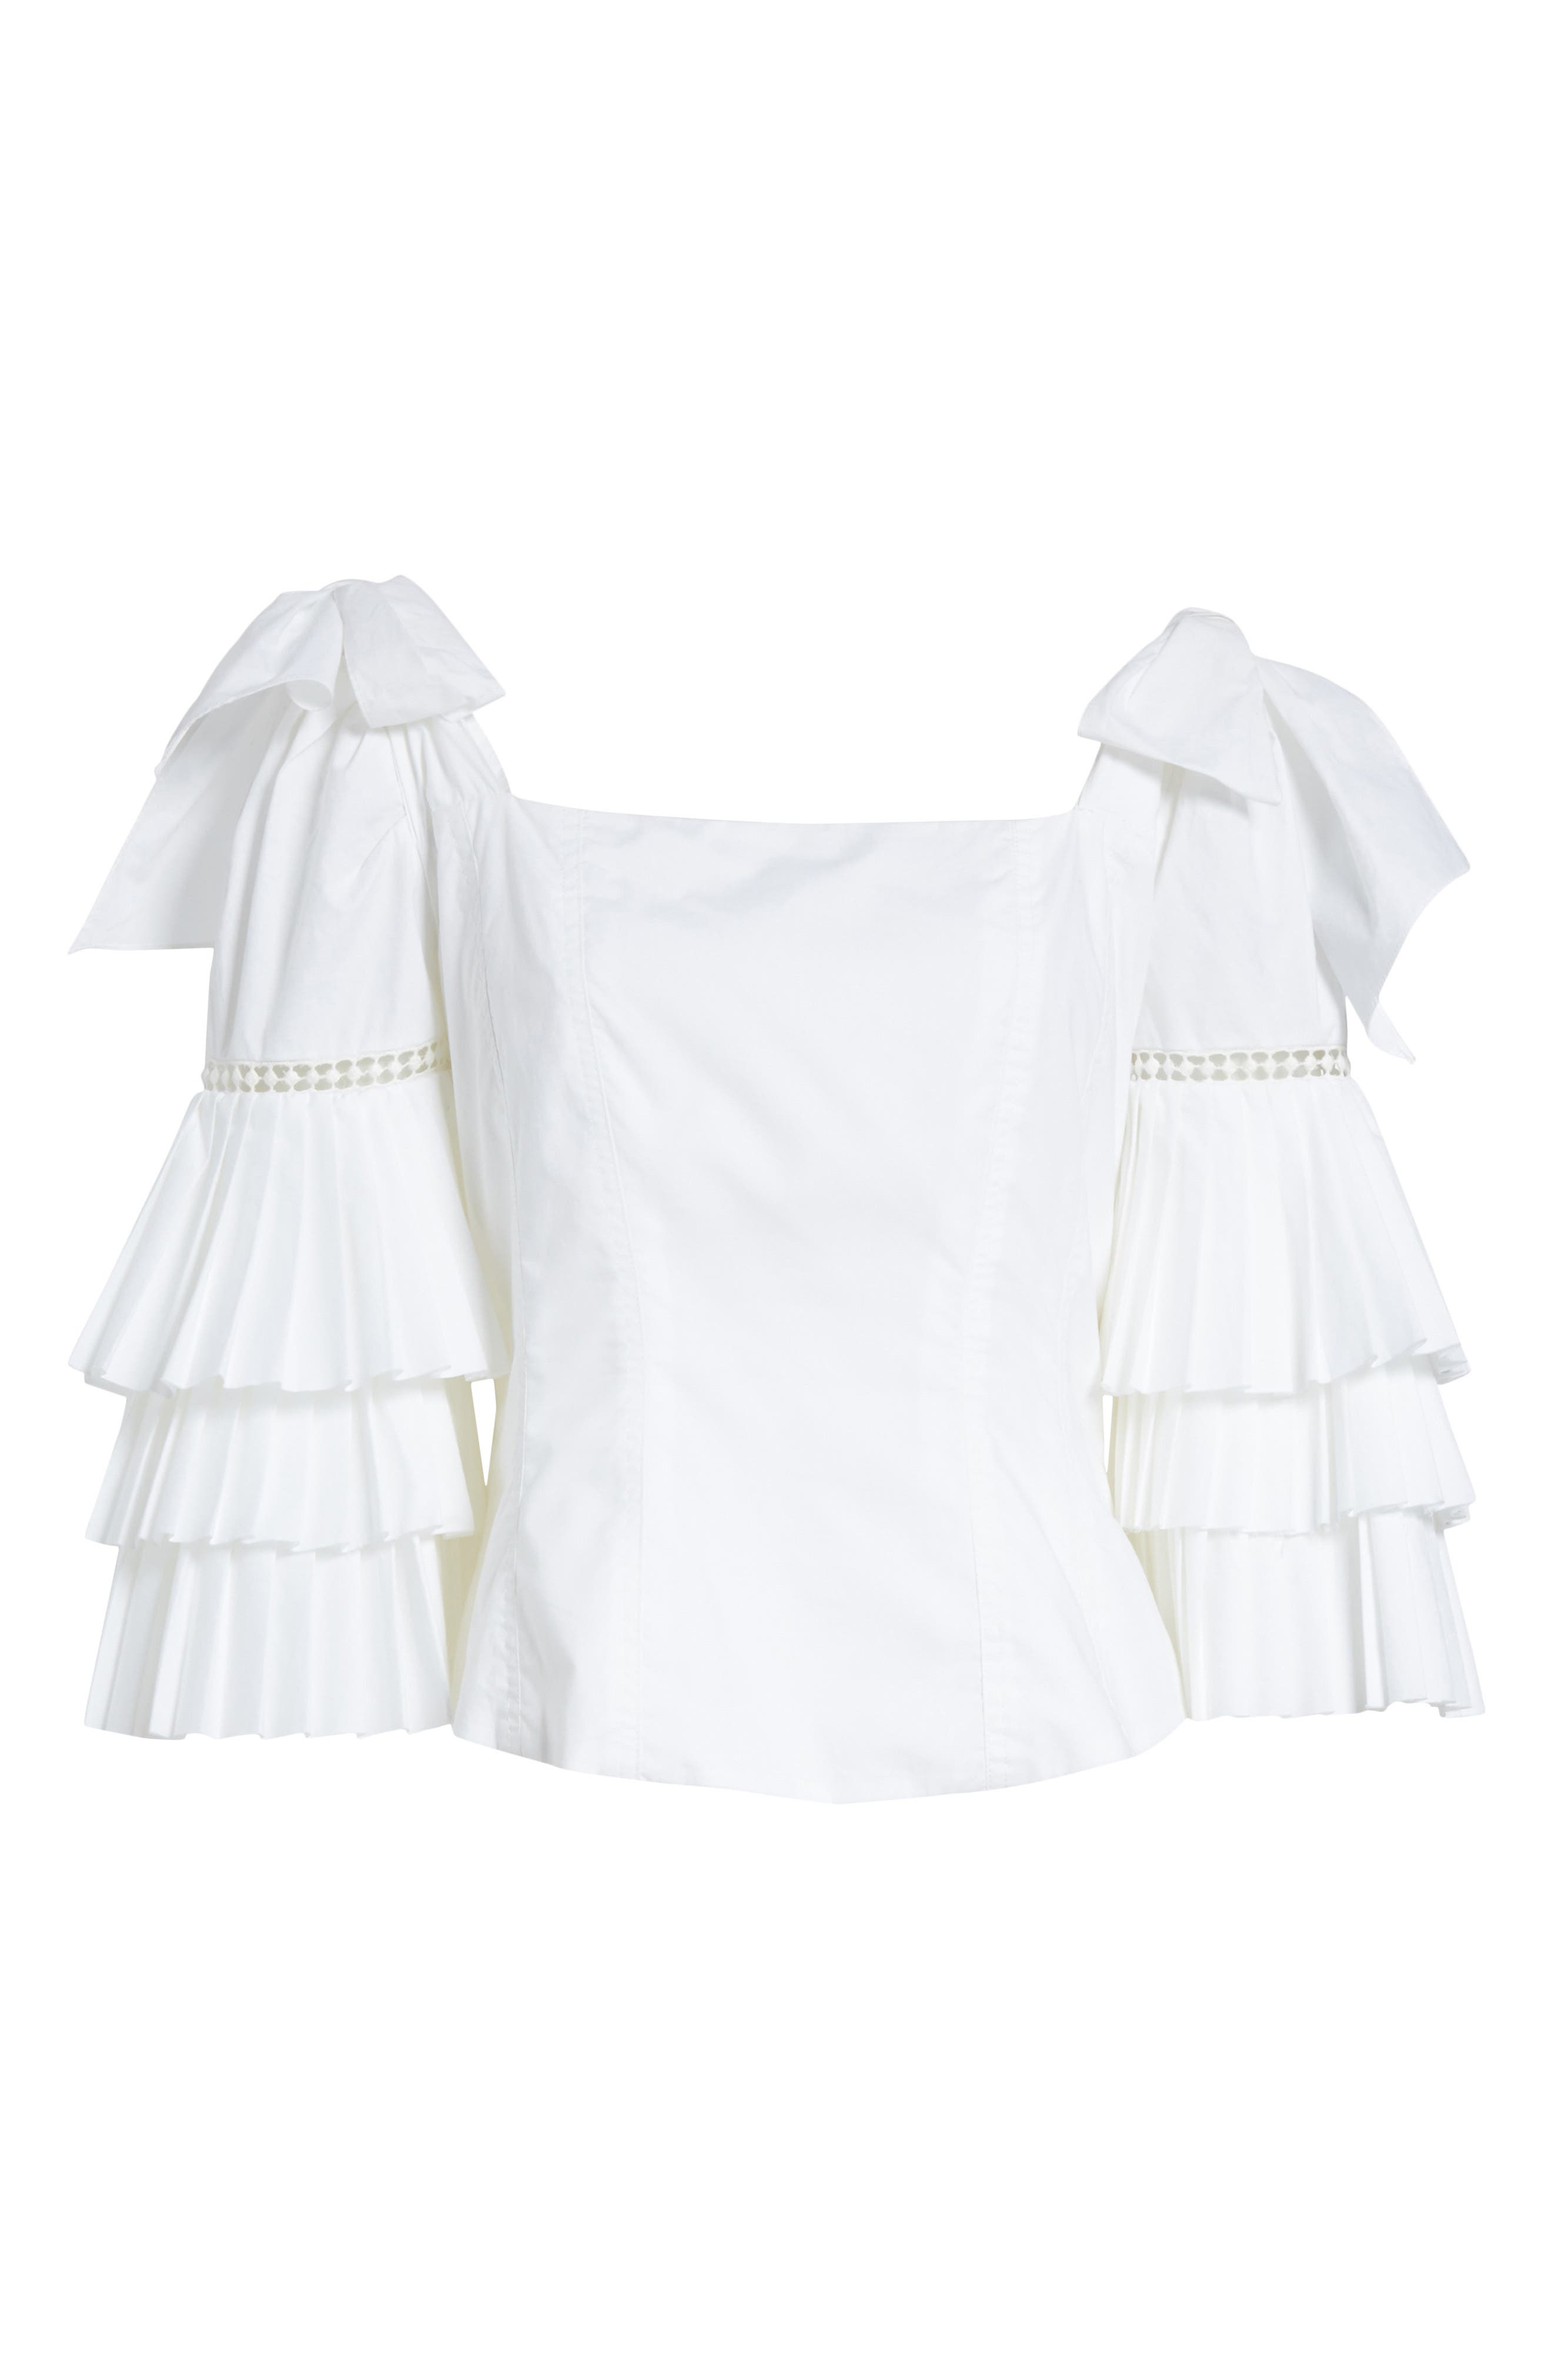 Antoinette Ruffle Sleeve Blouse,                             Alternate thumbnail 7, color,                             White